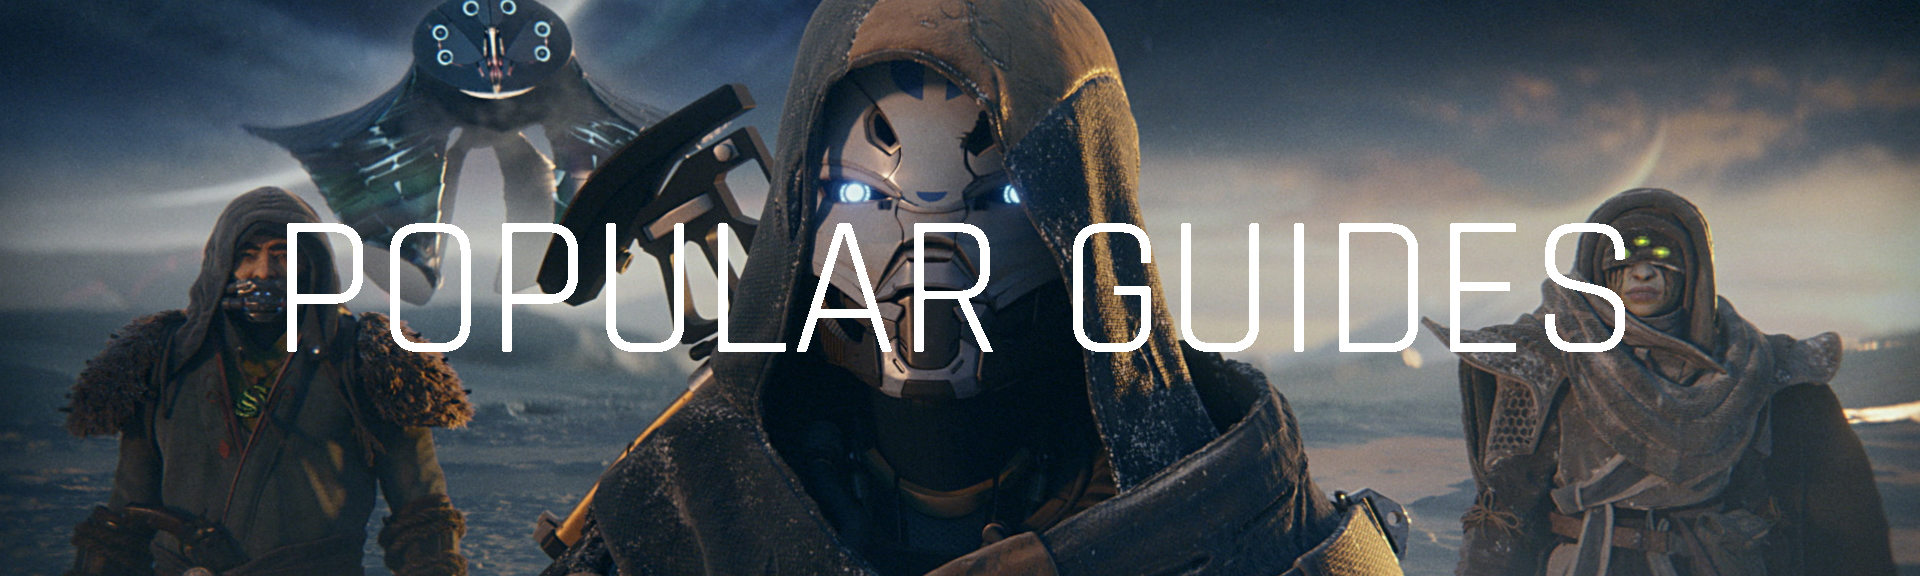 destiny 2 popular guides